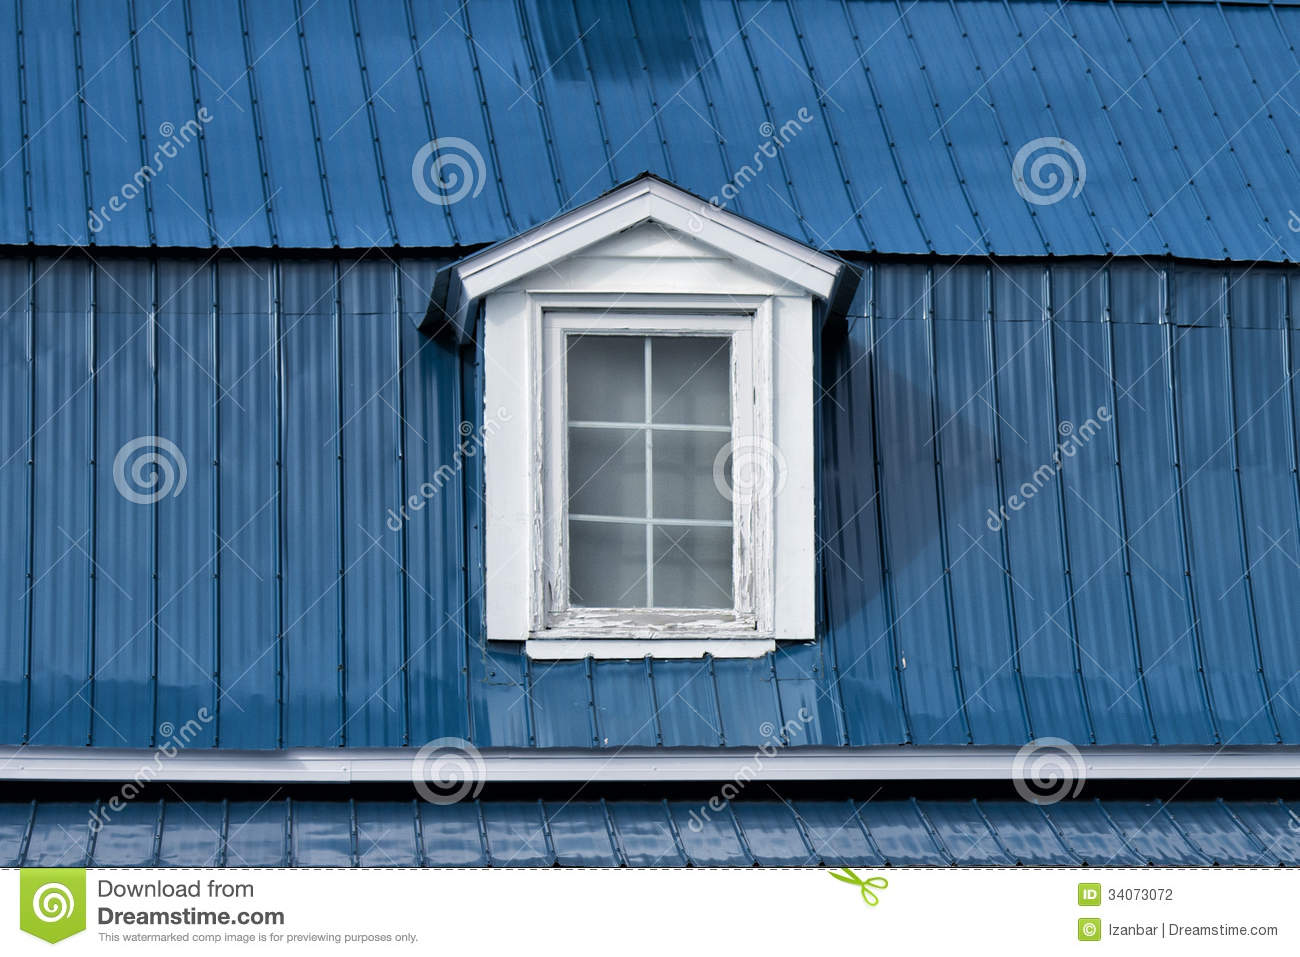 Old american house dormer stock photography image 34073072 for Old american houses